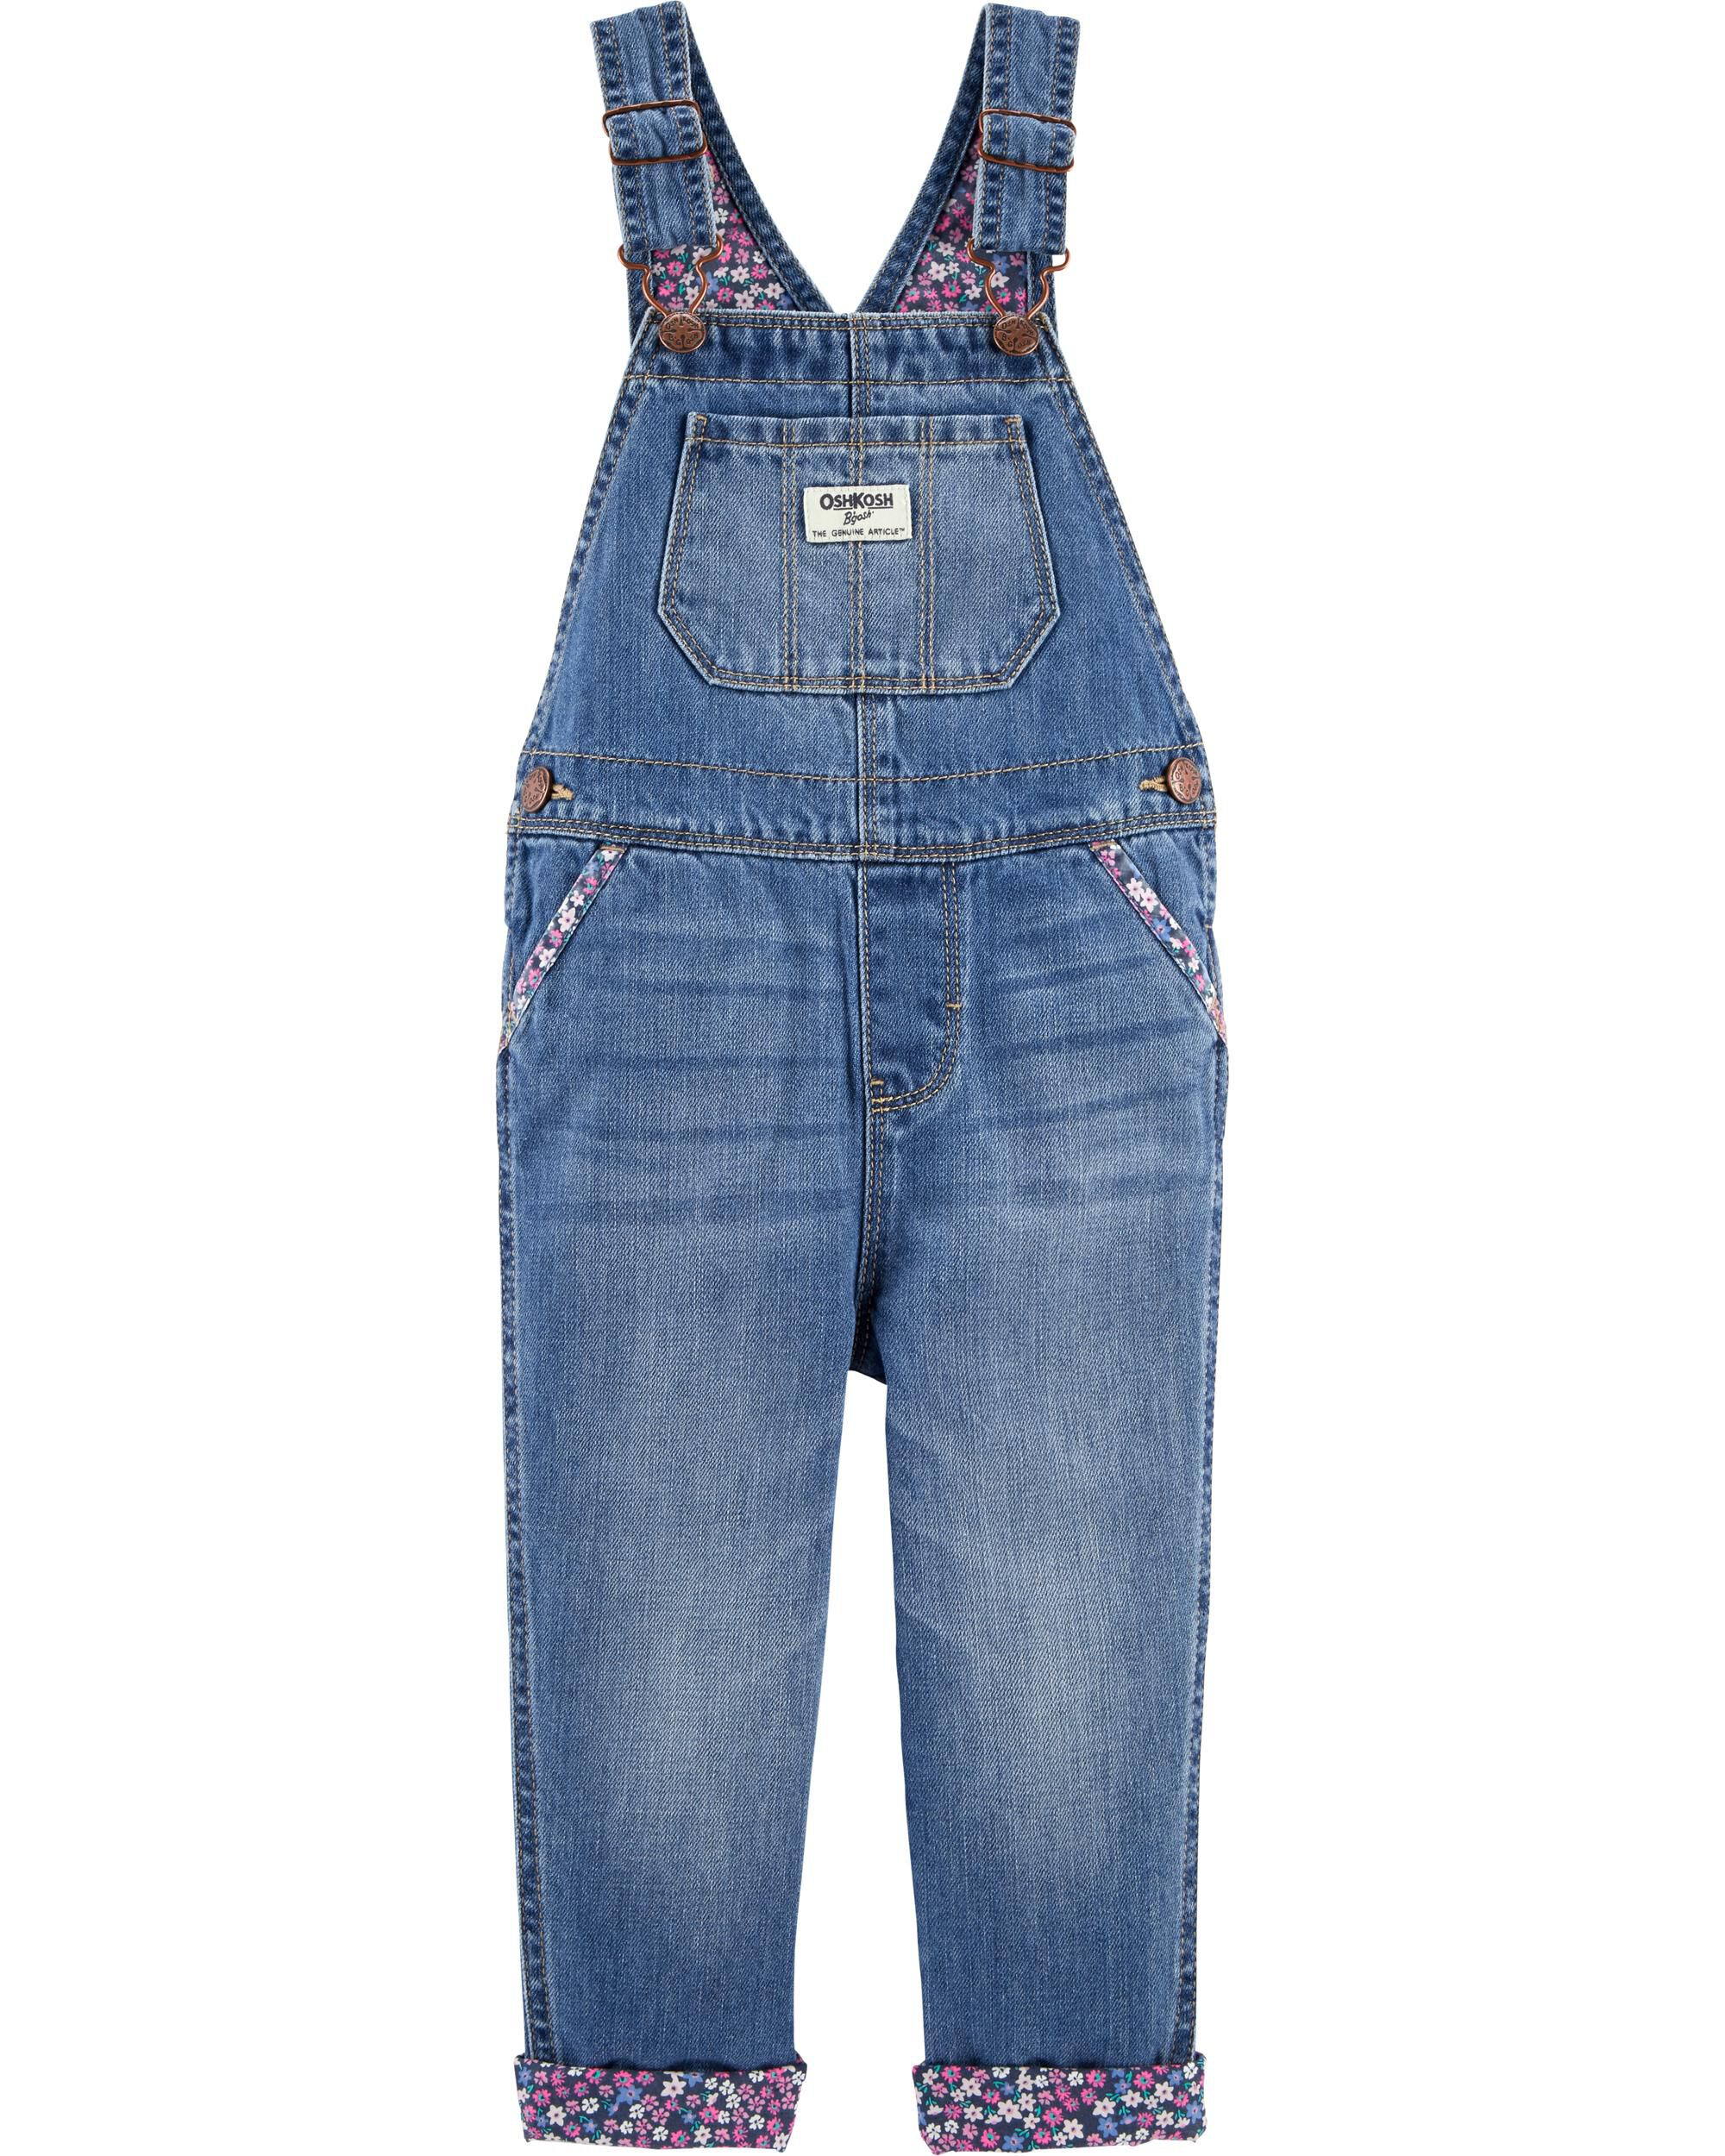 Outfits & Sets The Cheapest Price Next Baby Boy Girl Denim Look Dungarees With Stars